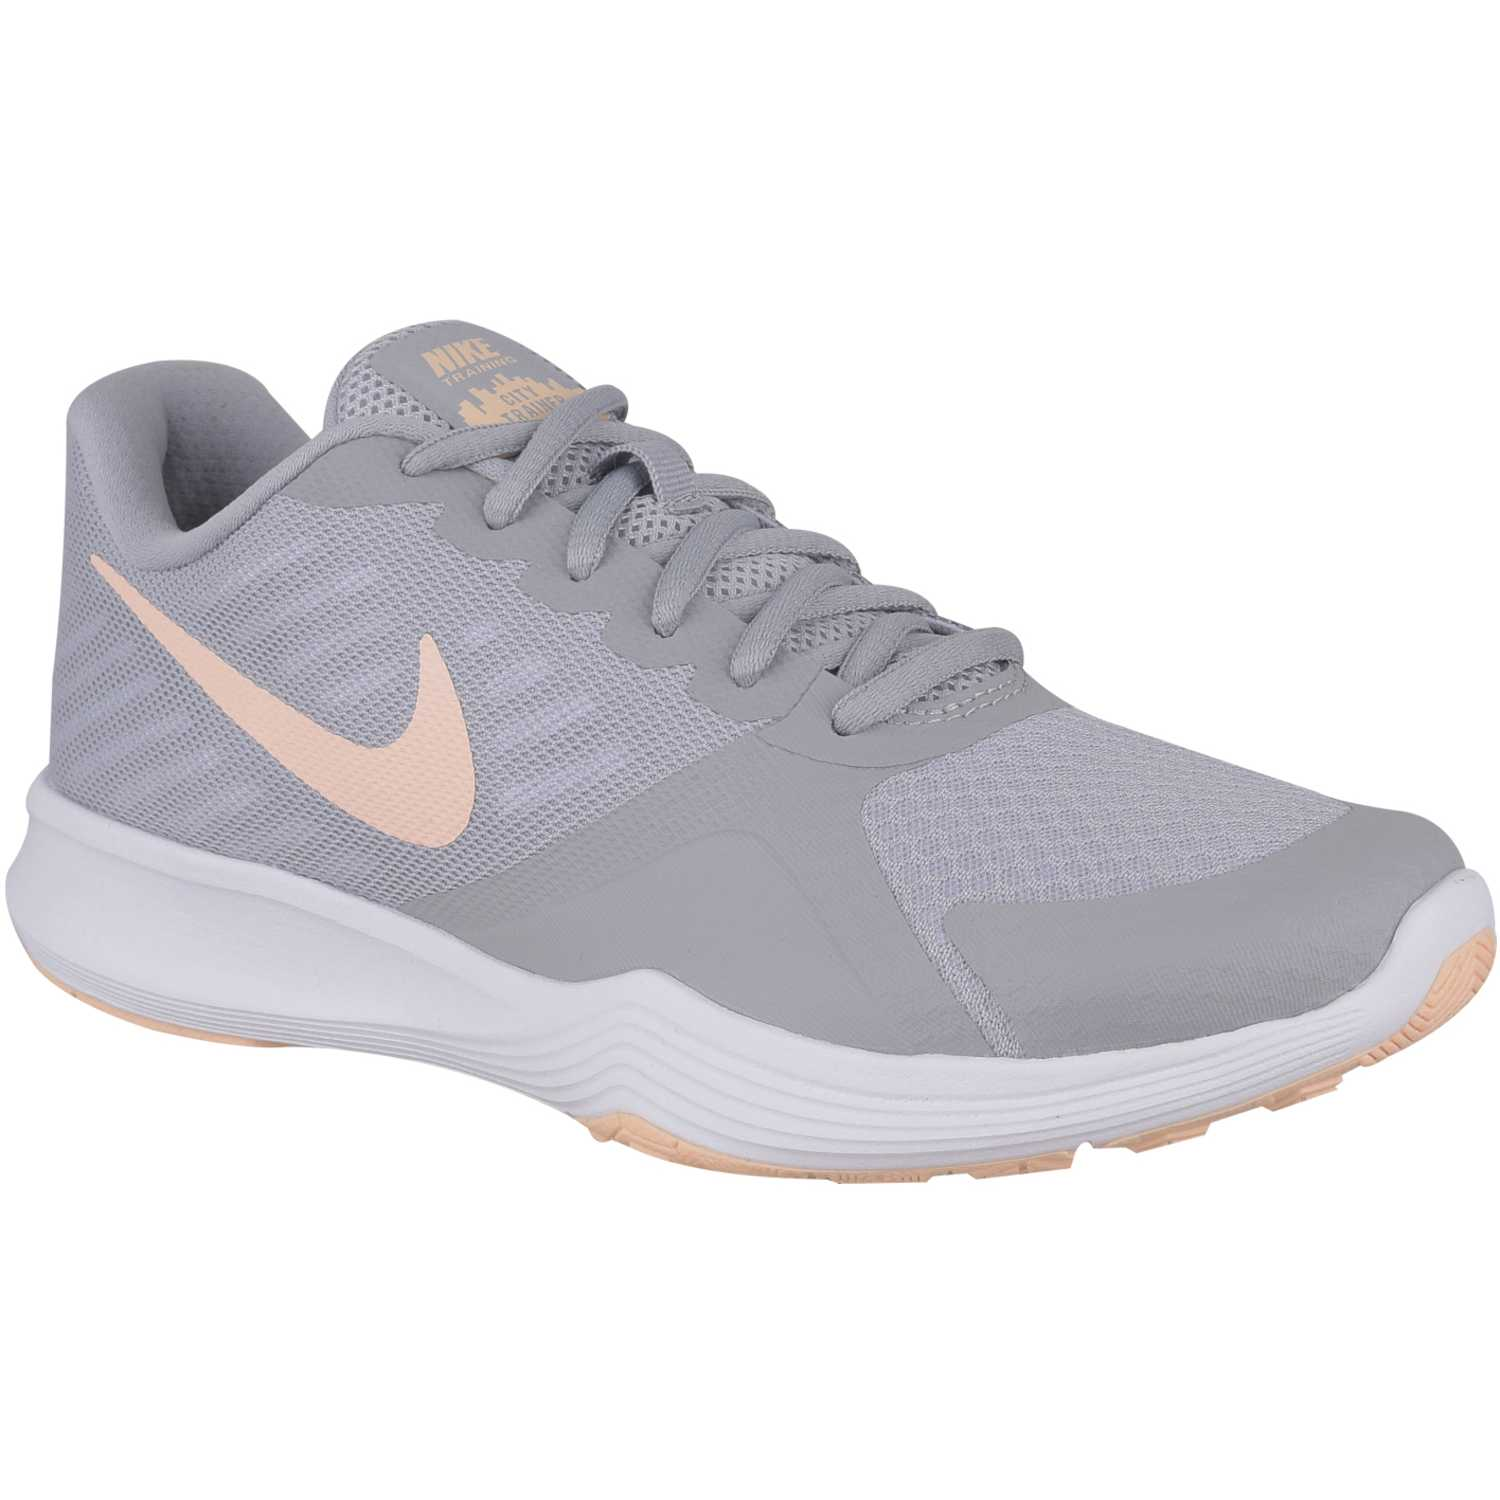 d9161cab76b12 Zapatilla de Mujer Nike Gris wmns nike city trainer